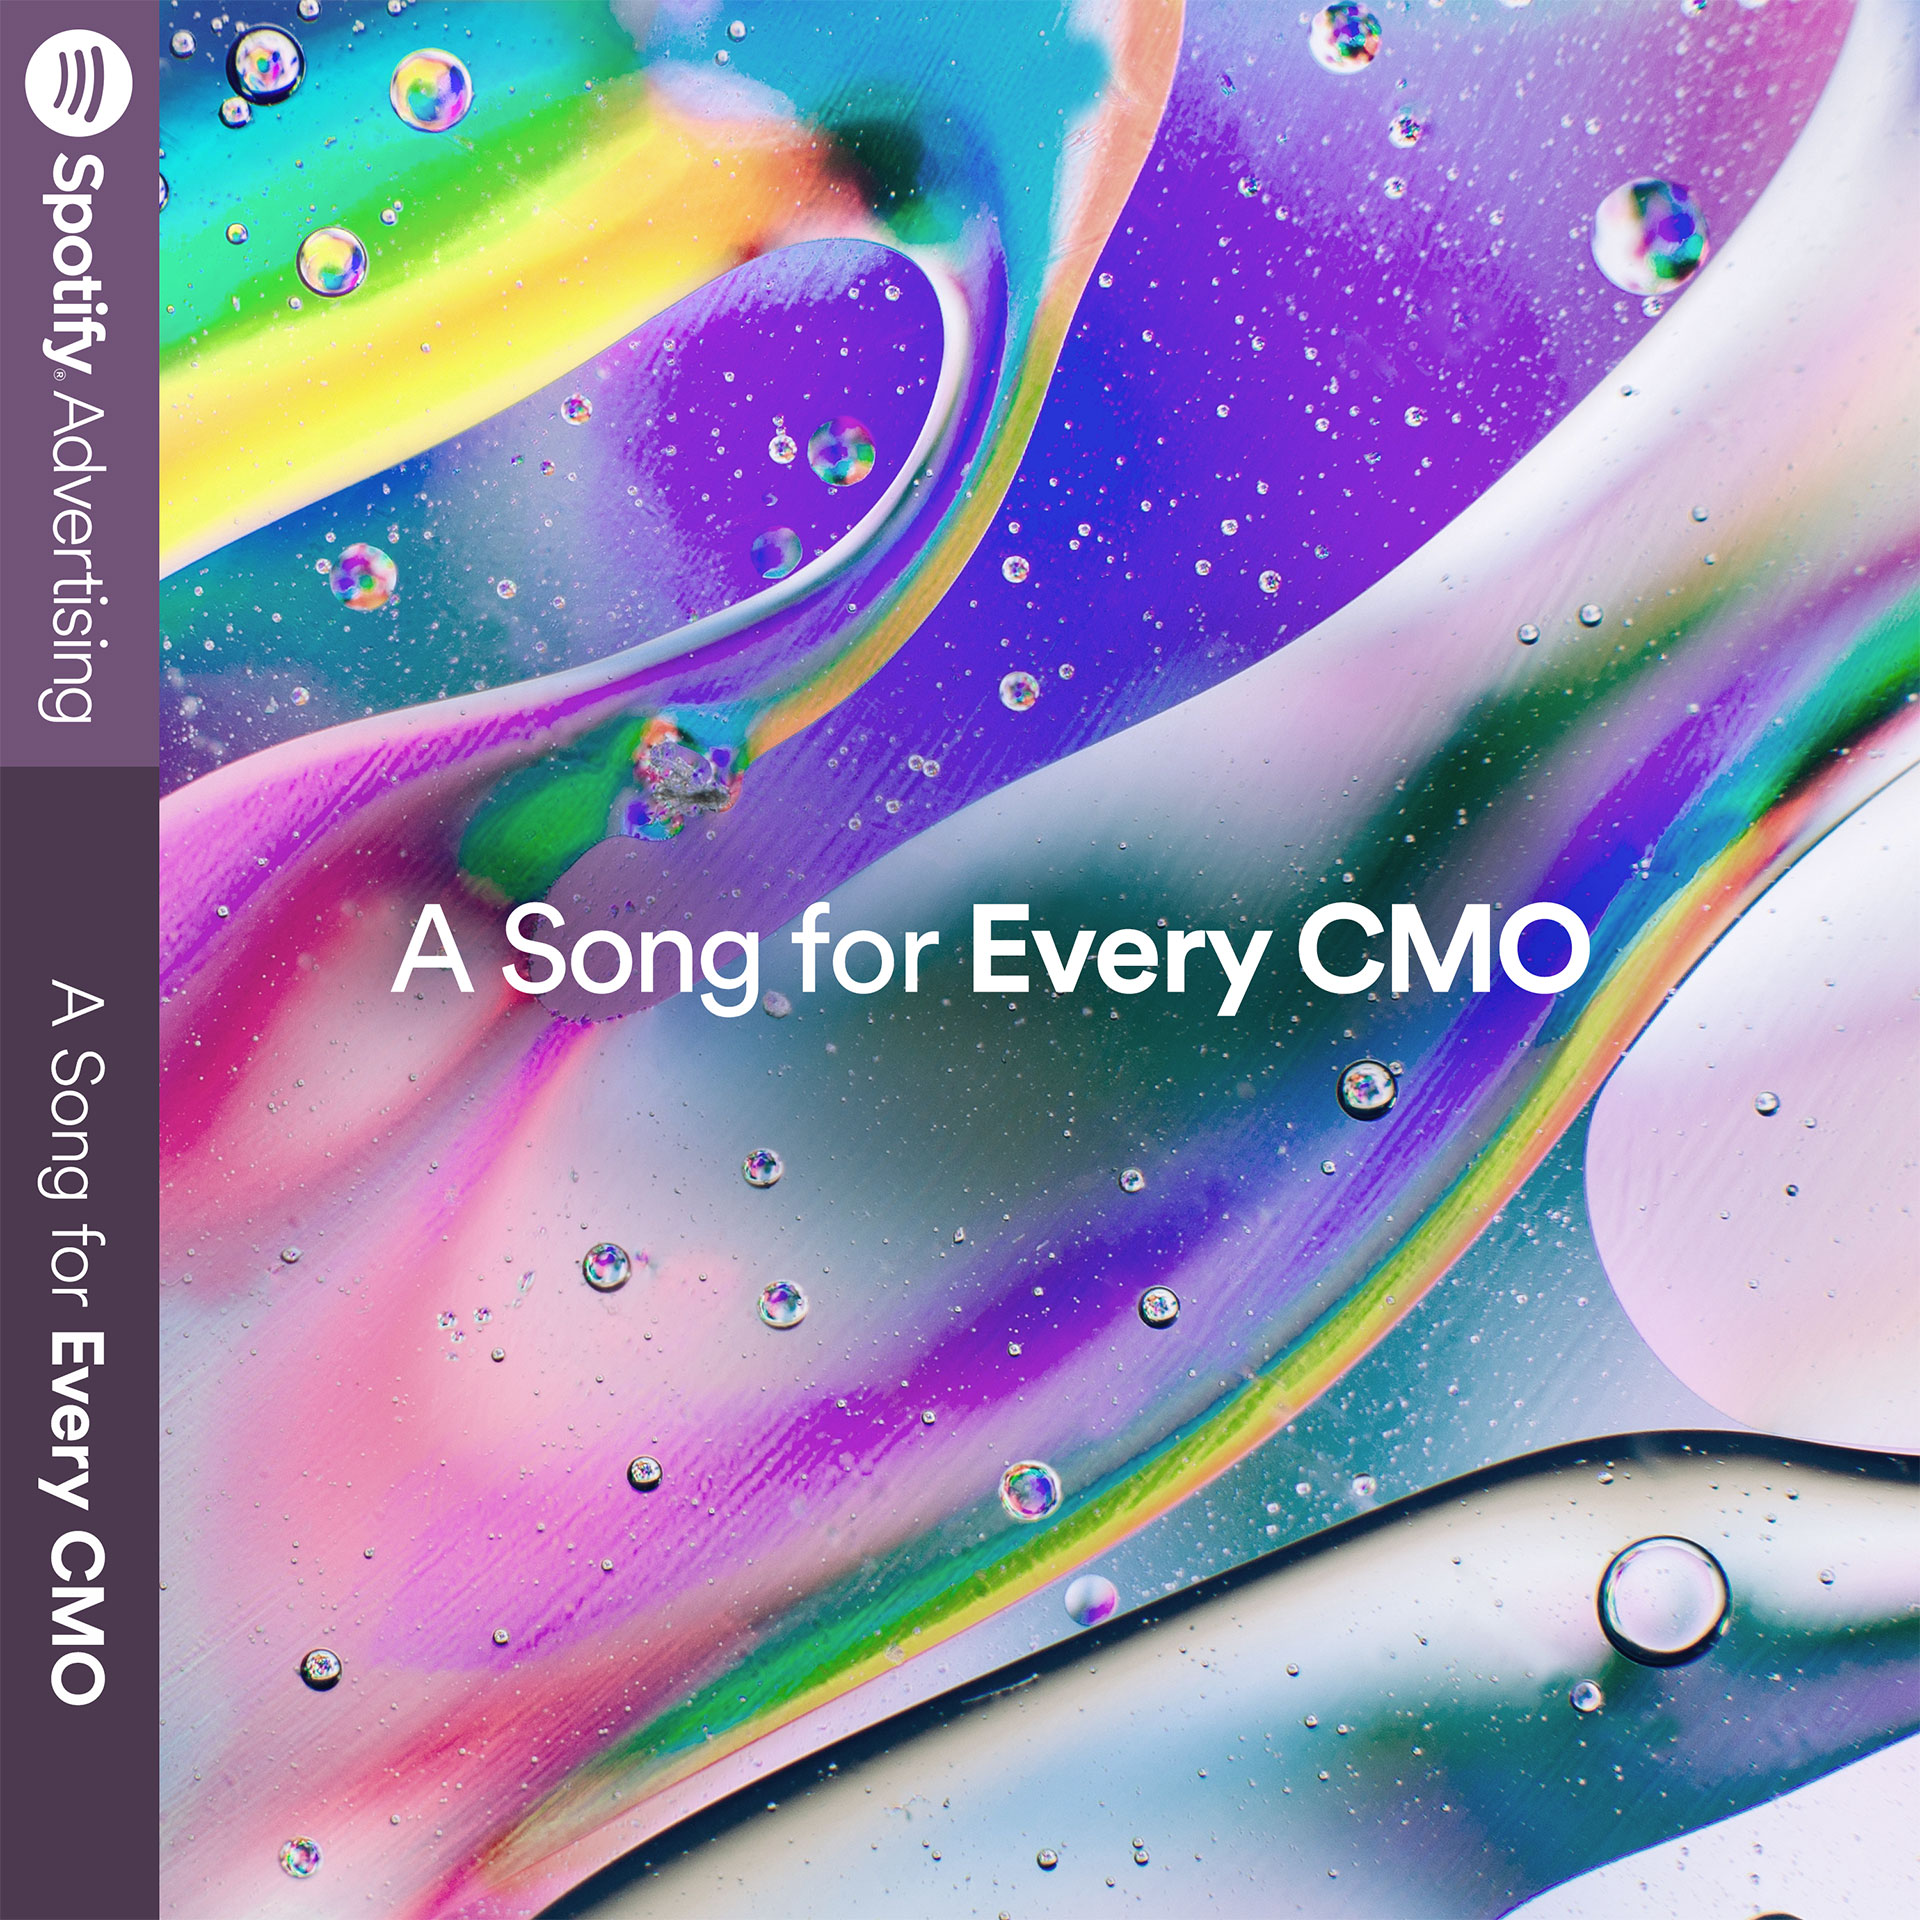 Spotify-A-Song-for-Every-CMO-final-hed-2021_0